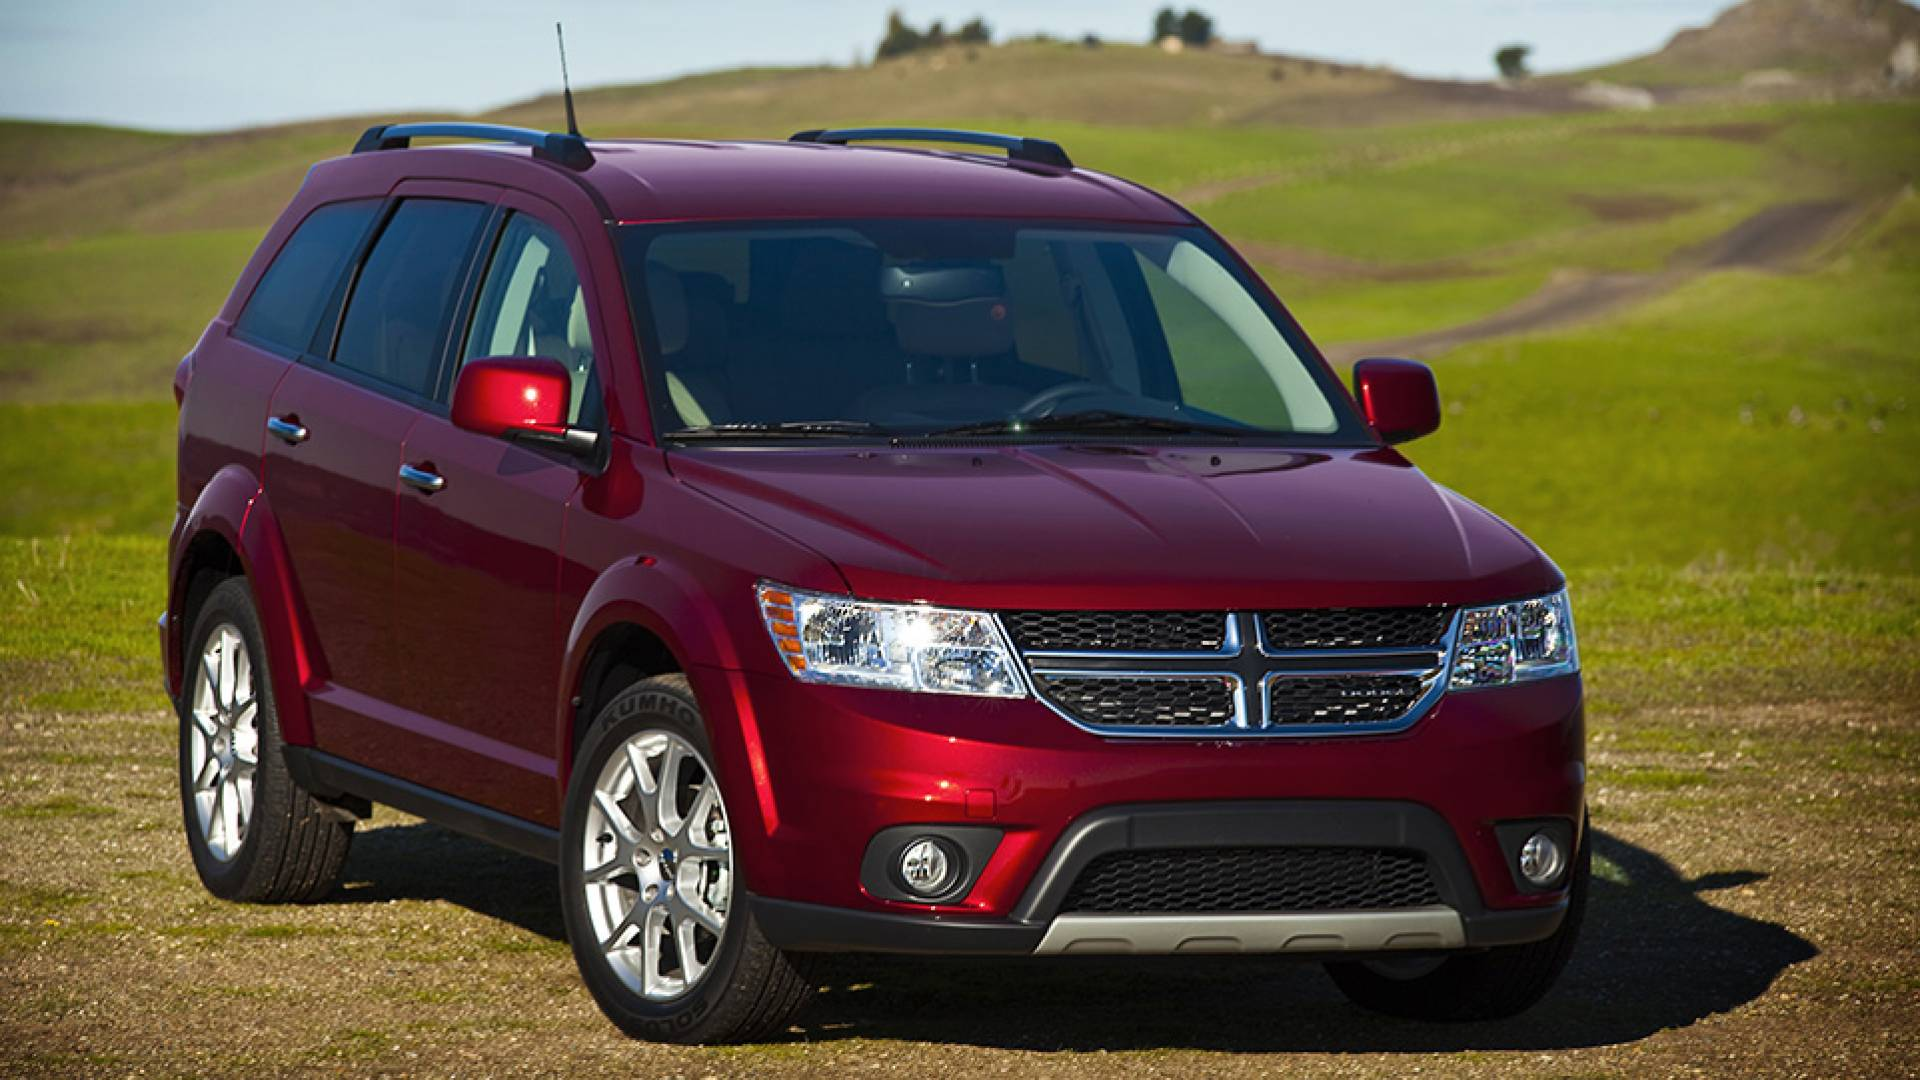 dodge journey precios prueba ficha t cnica y fotos. Black Bedroom Furniture Sets. Home Design Ideas